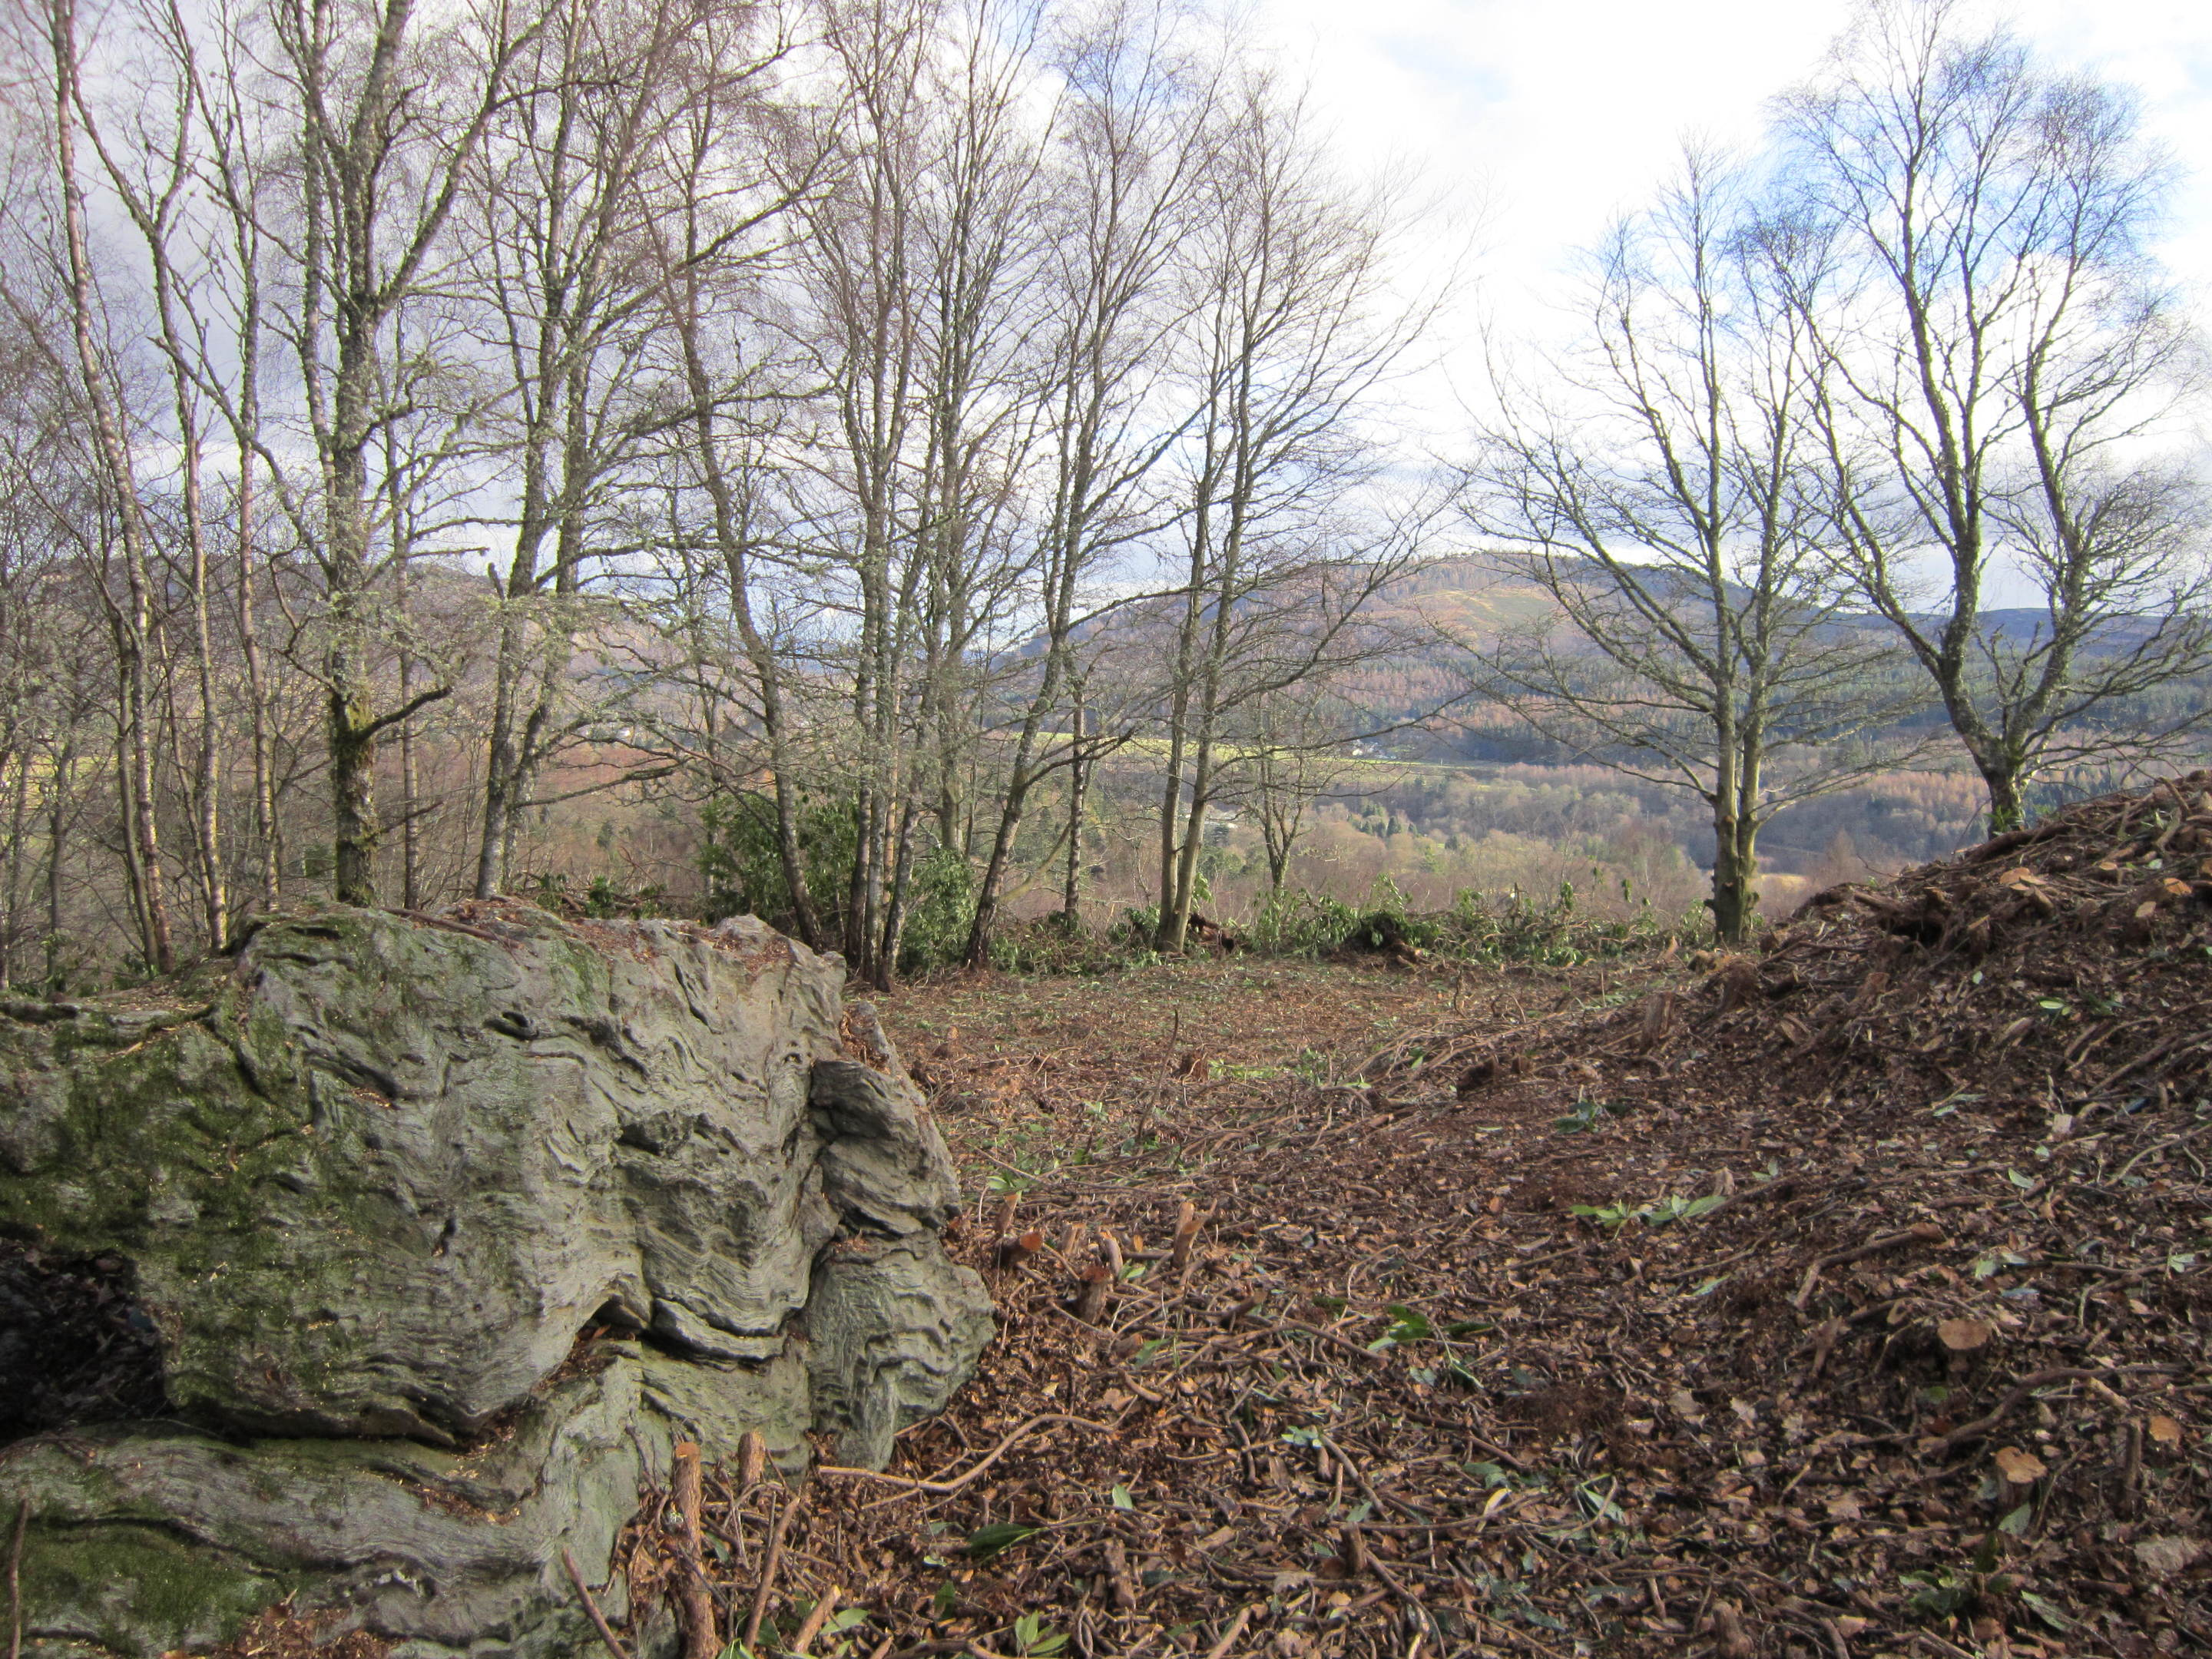 The King's Seat near Dunkeld and the views from the top.